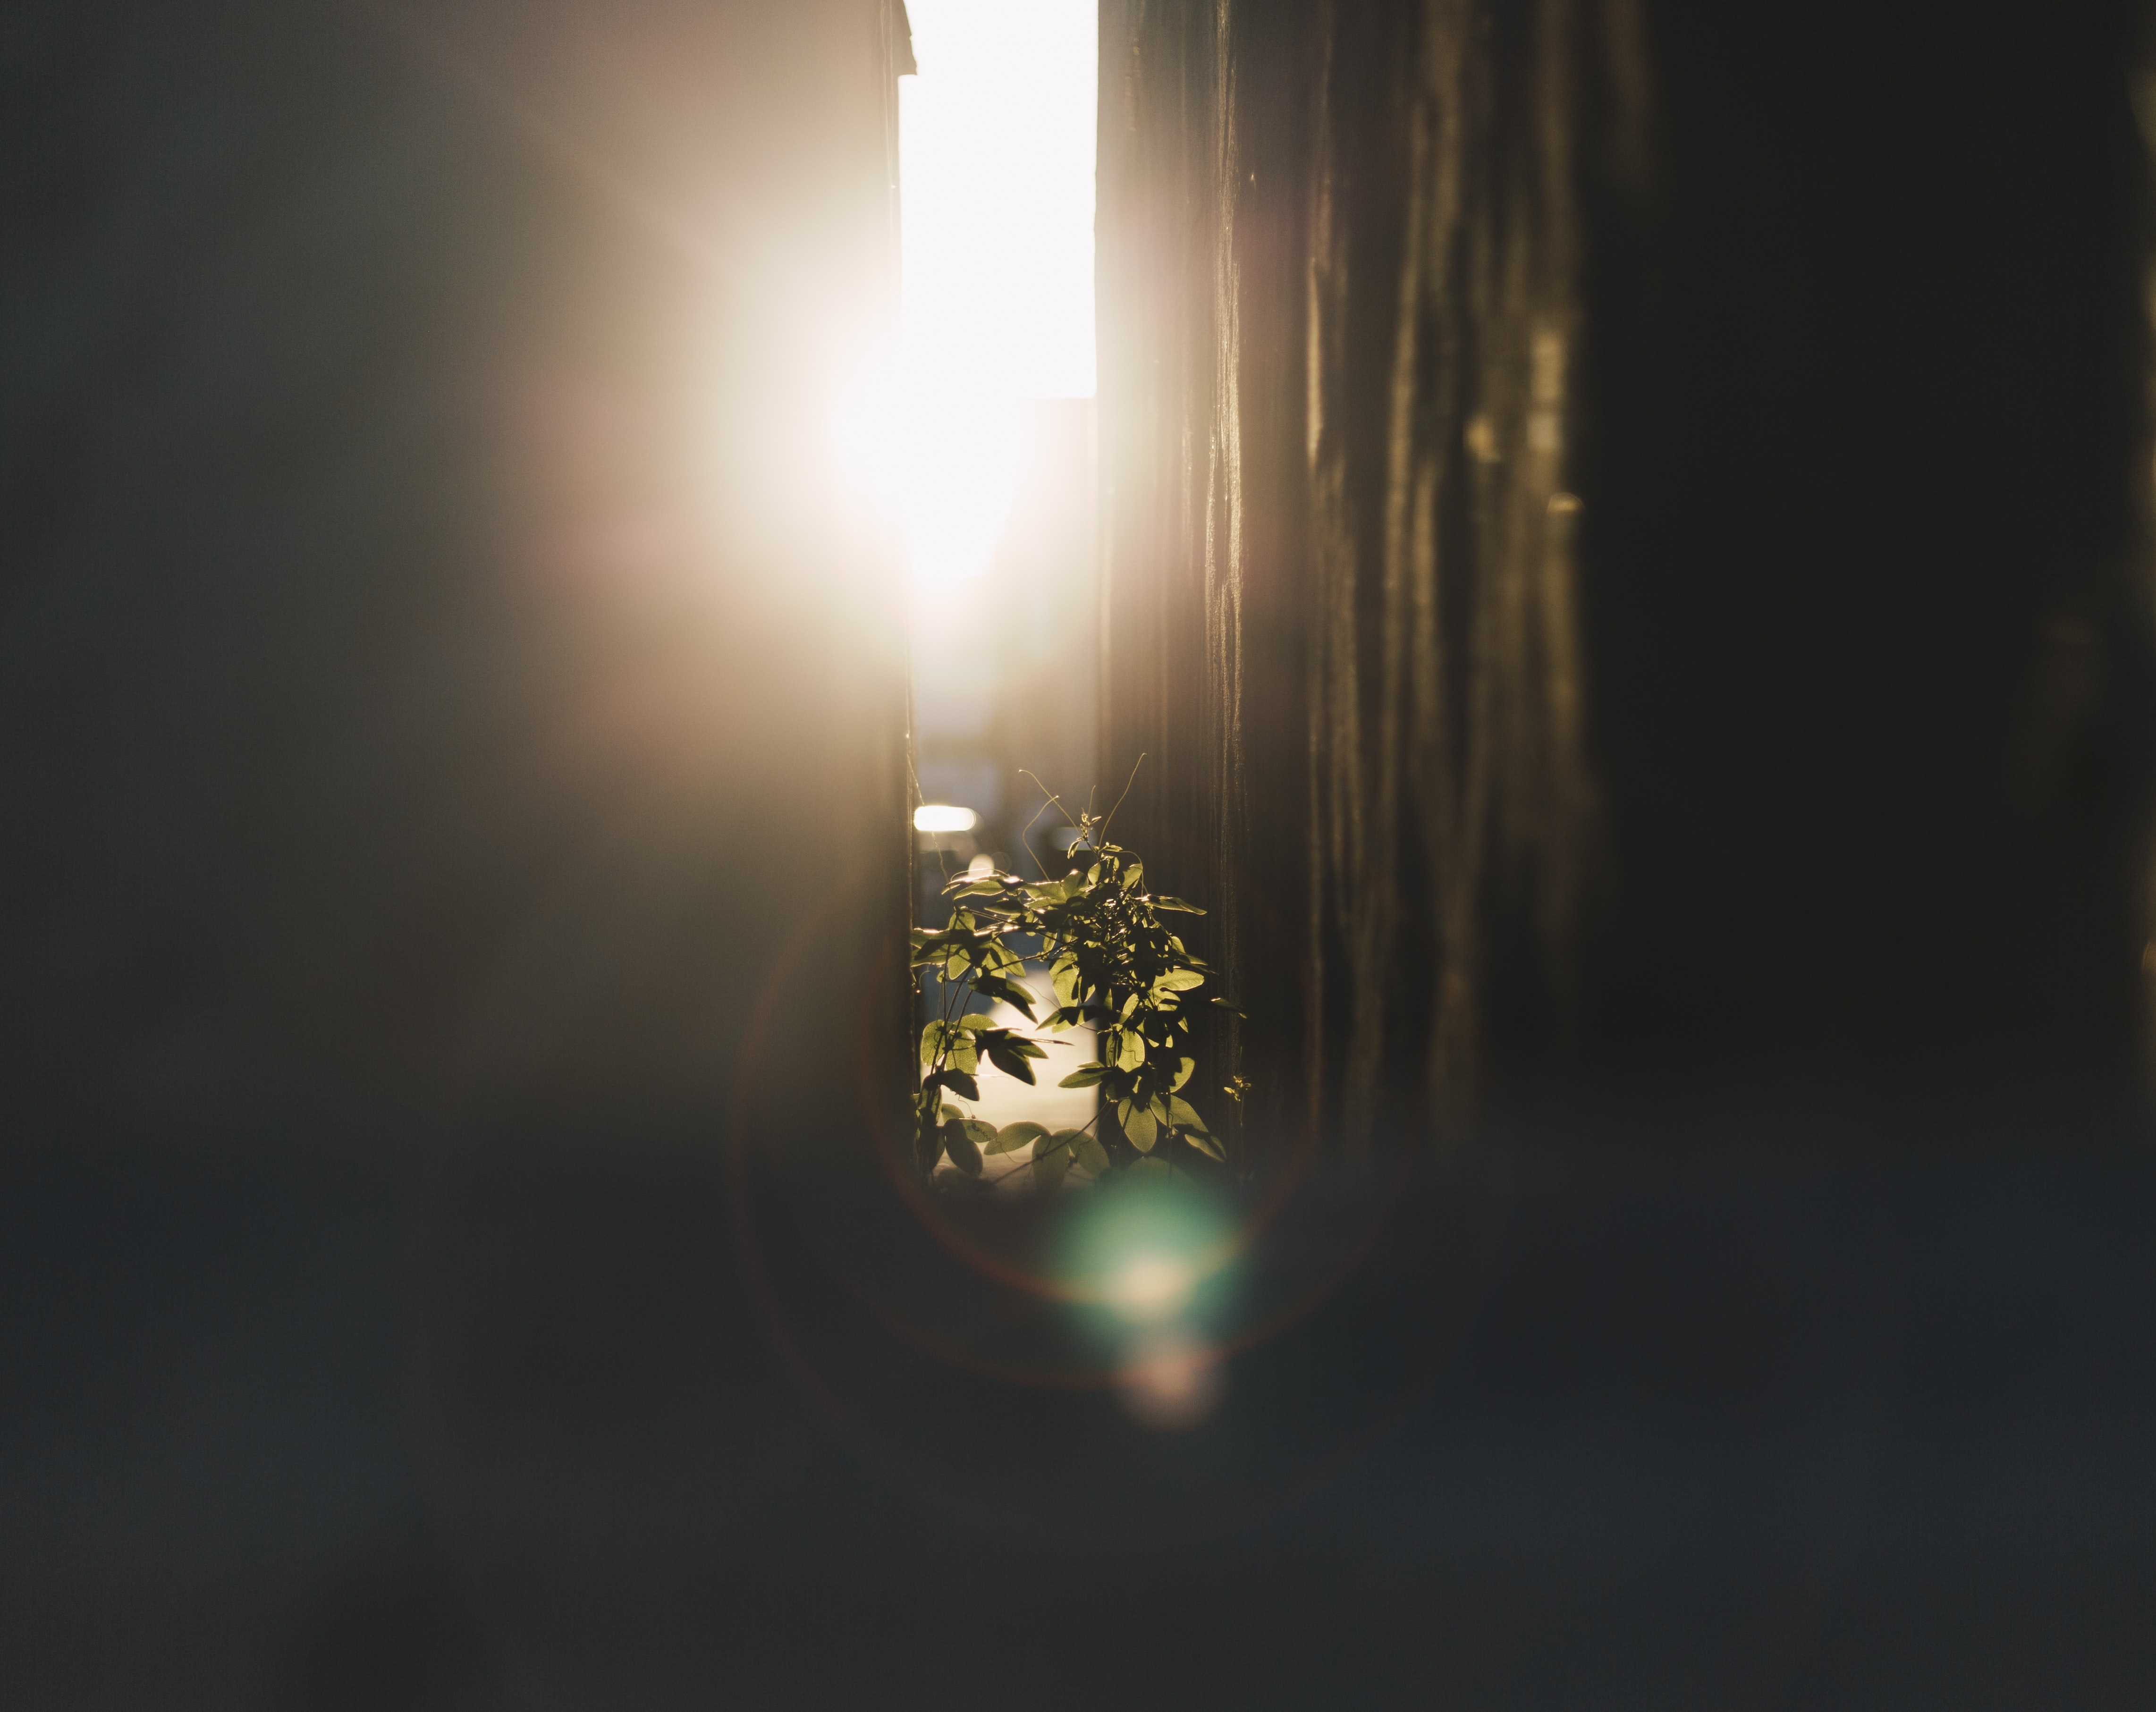 A sun flare in an alley with plants in Los Angeles